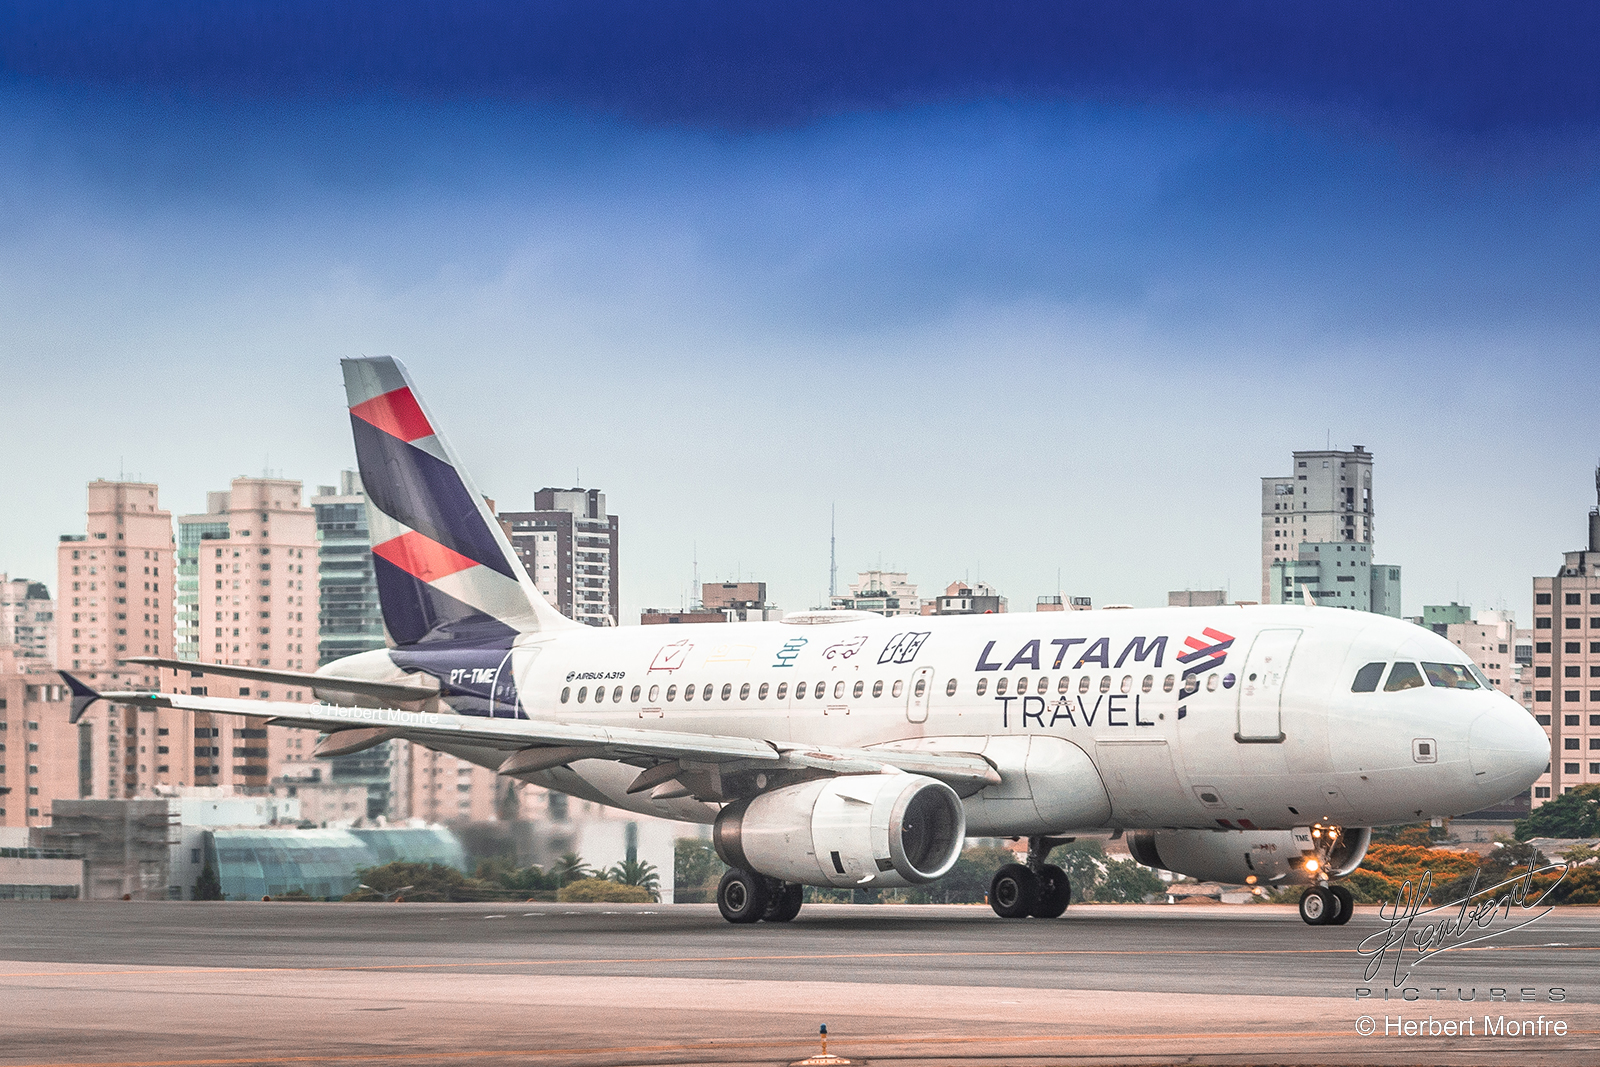 LATAM Brazil Regains 77% of its Domestic Fligts Network Seat Supply in August | Photo © Herbert Monfre - Airplane photographer - Events - Advertising - Essays - Hire the photographer by e-mail cmsherbert@hotmail.com | Image produced by Herbert Pictures - MORE THAN FLY